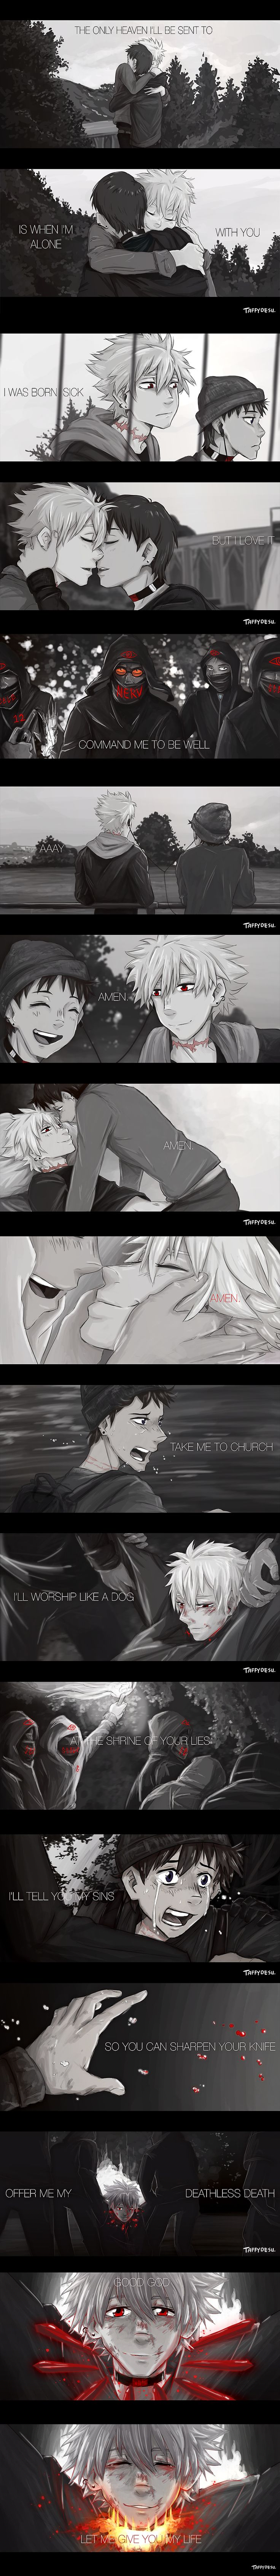 Kawoshin Take me to church by TaffyDesu